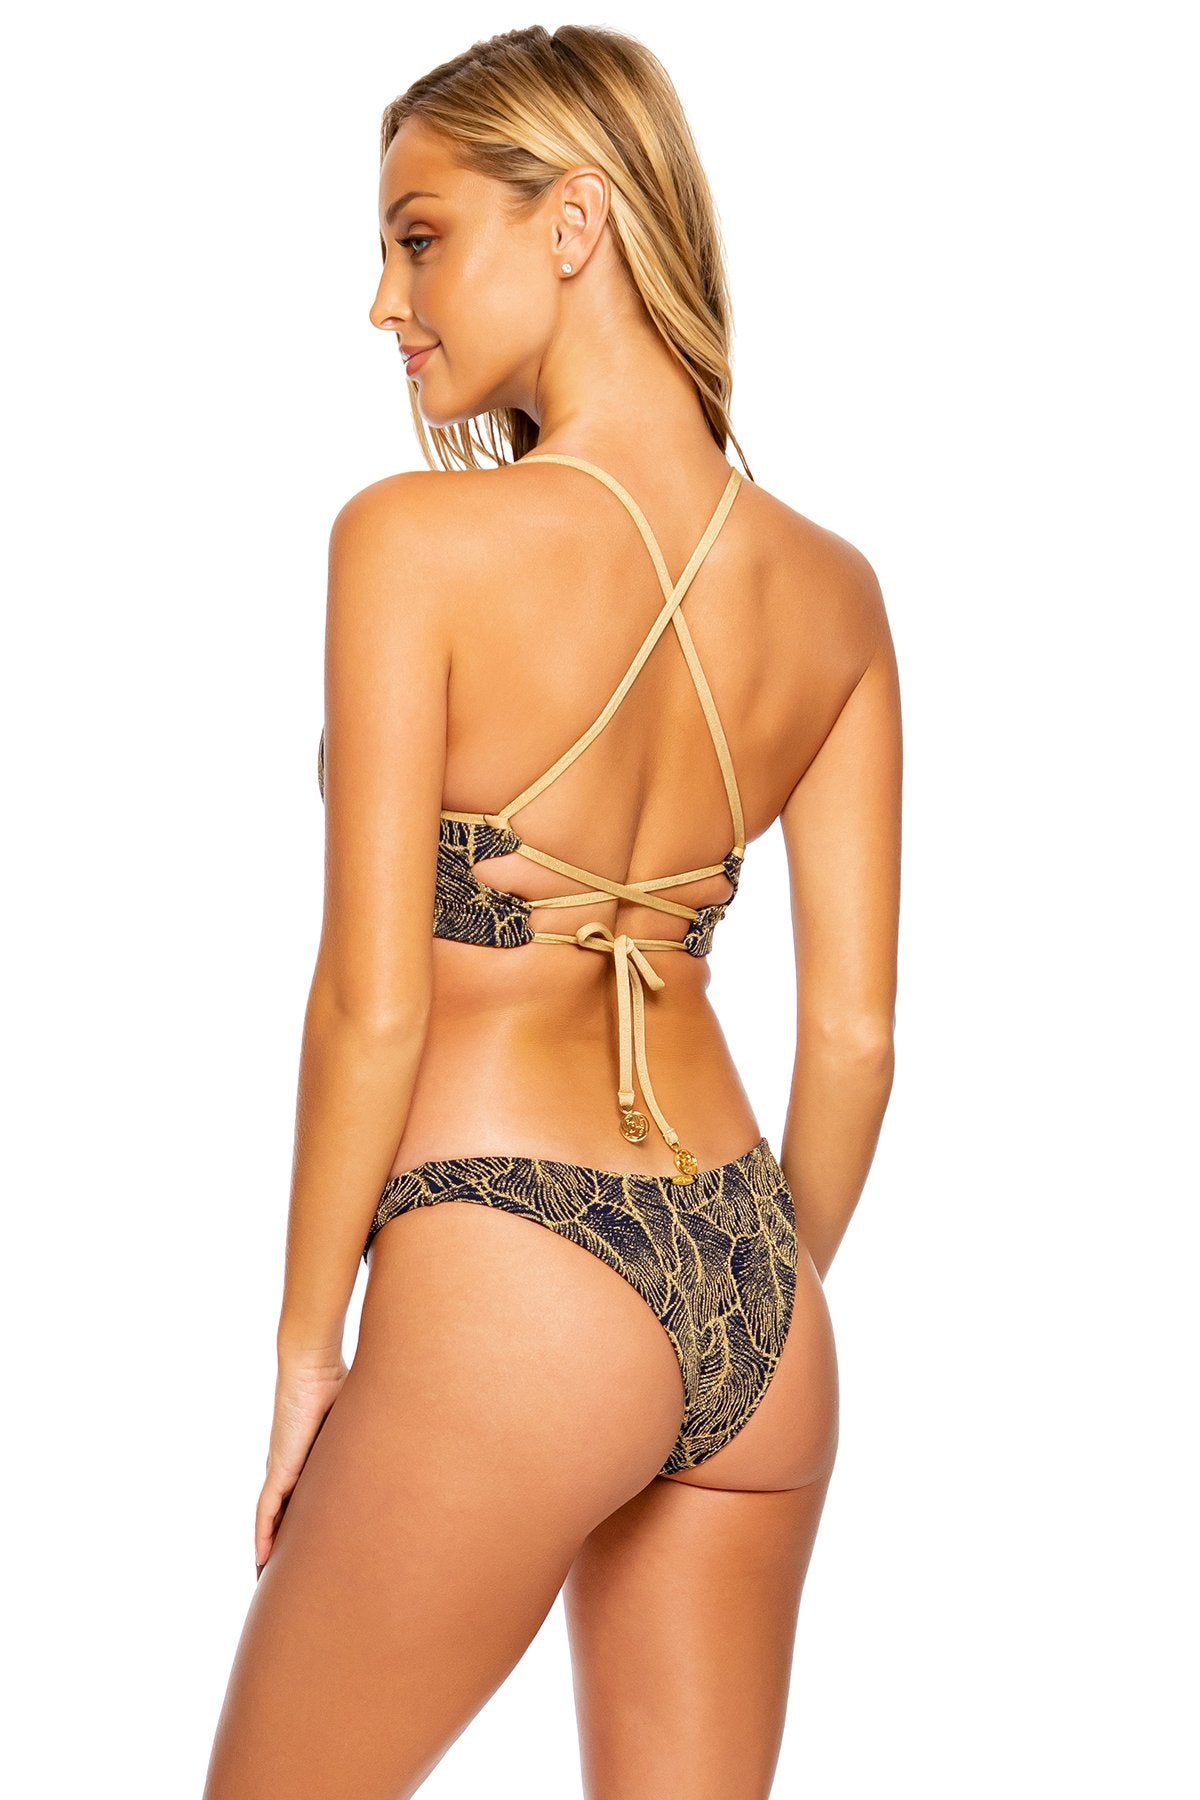 DREAMWEAVER - Underwire Top & High Leg Brazilian Bottom • Navy / Gold